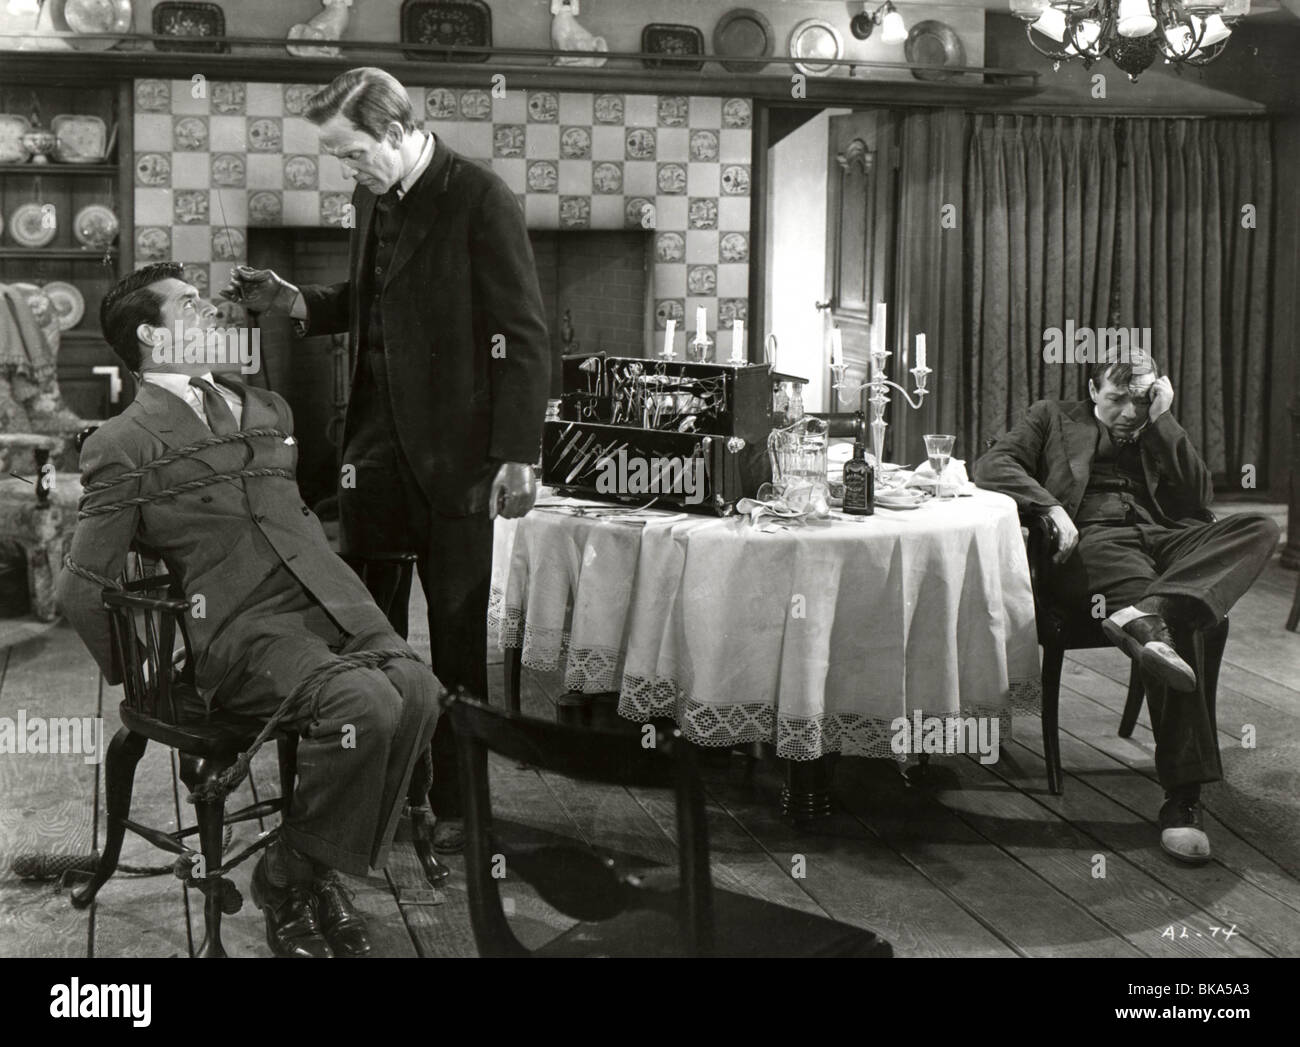 ARSENIC AND OLD LACE (1944) CARY GRANT, RAYMOND MASSEY, PETER LORRE AOL 003P - Stock Image